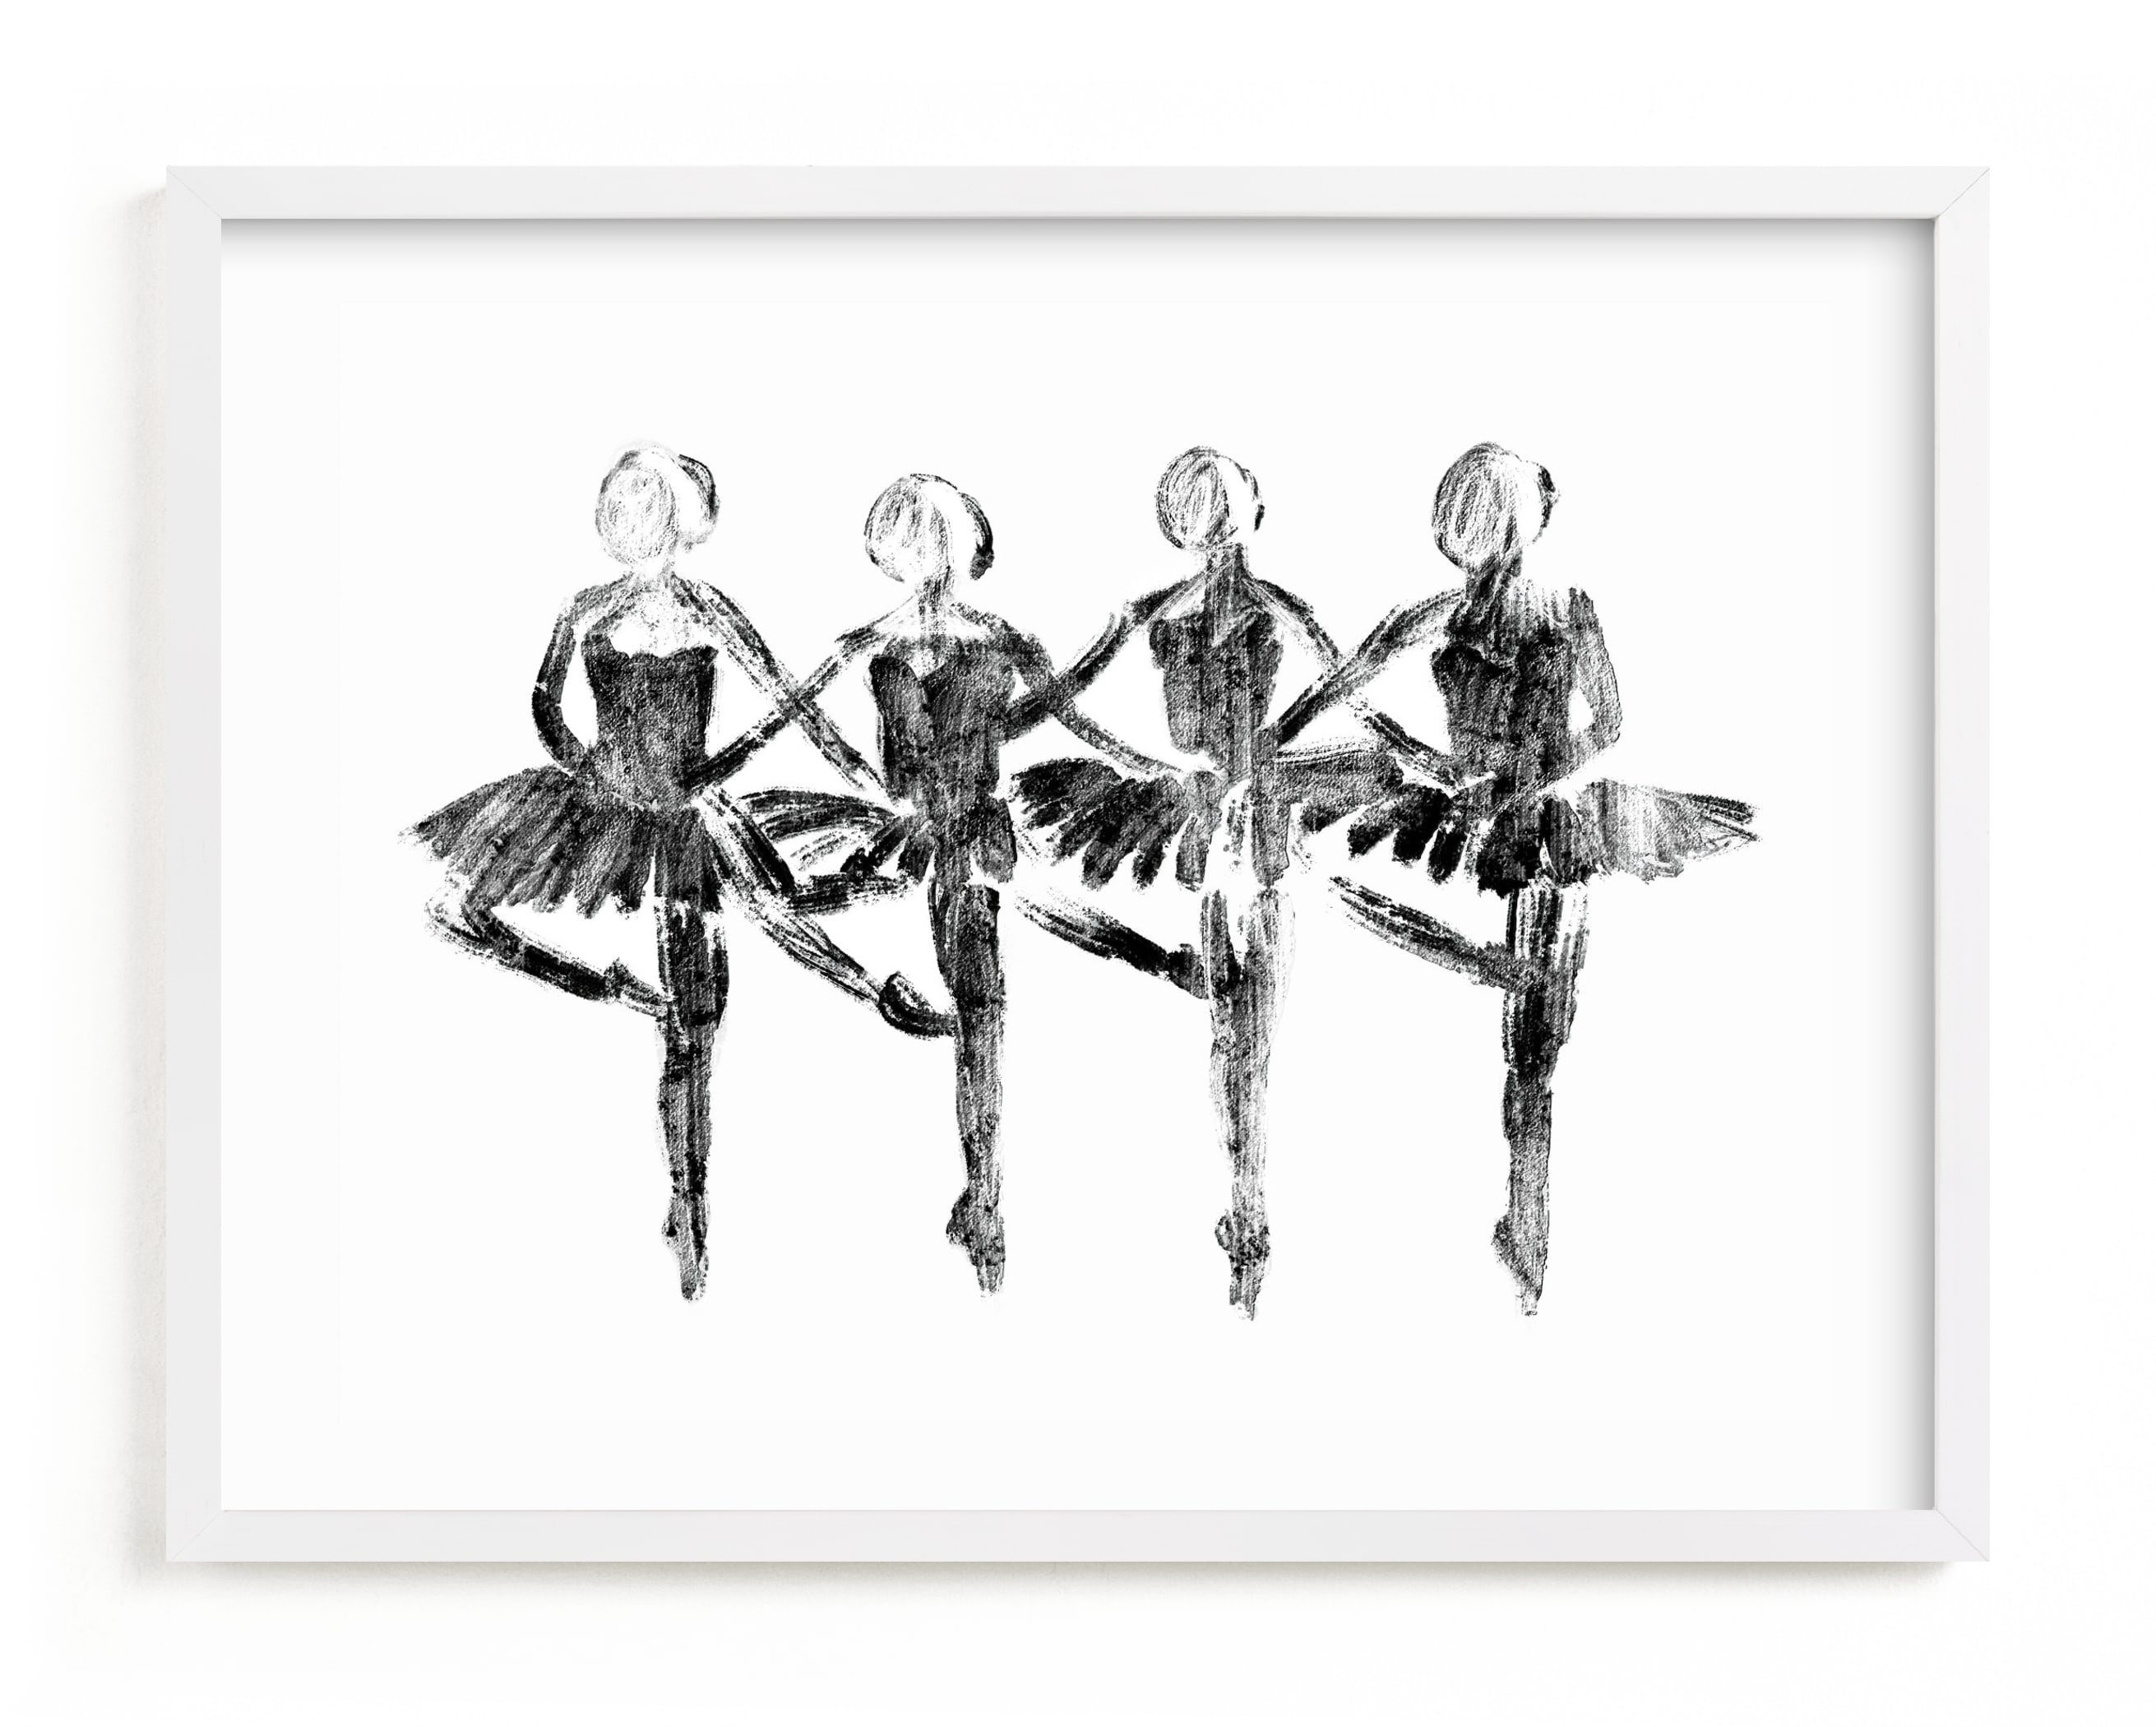 This is a black and white kids wall art by Leanne Friedberg called Les Cygnets.